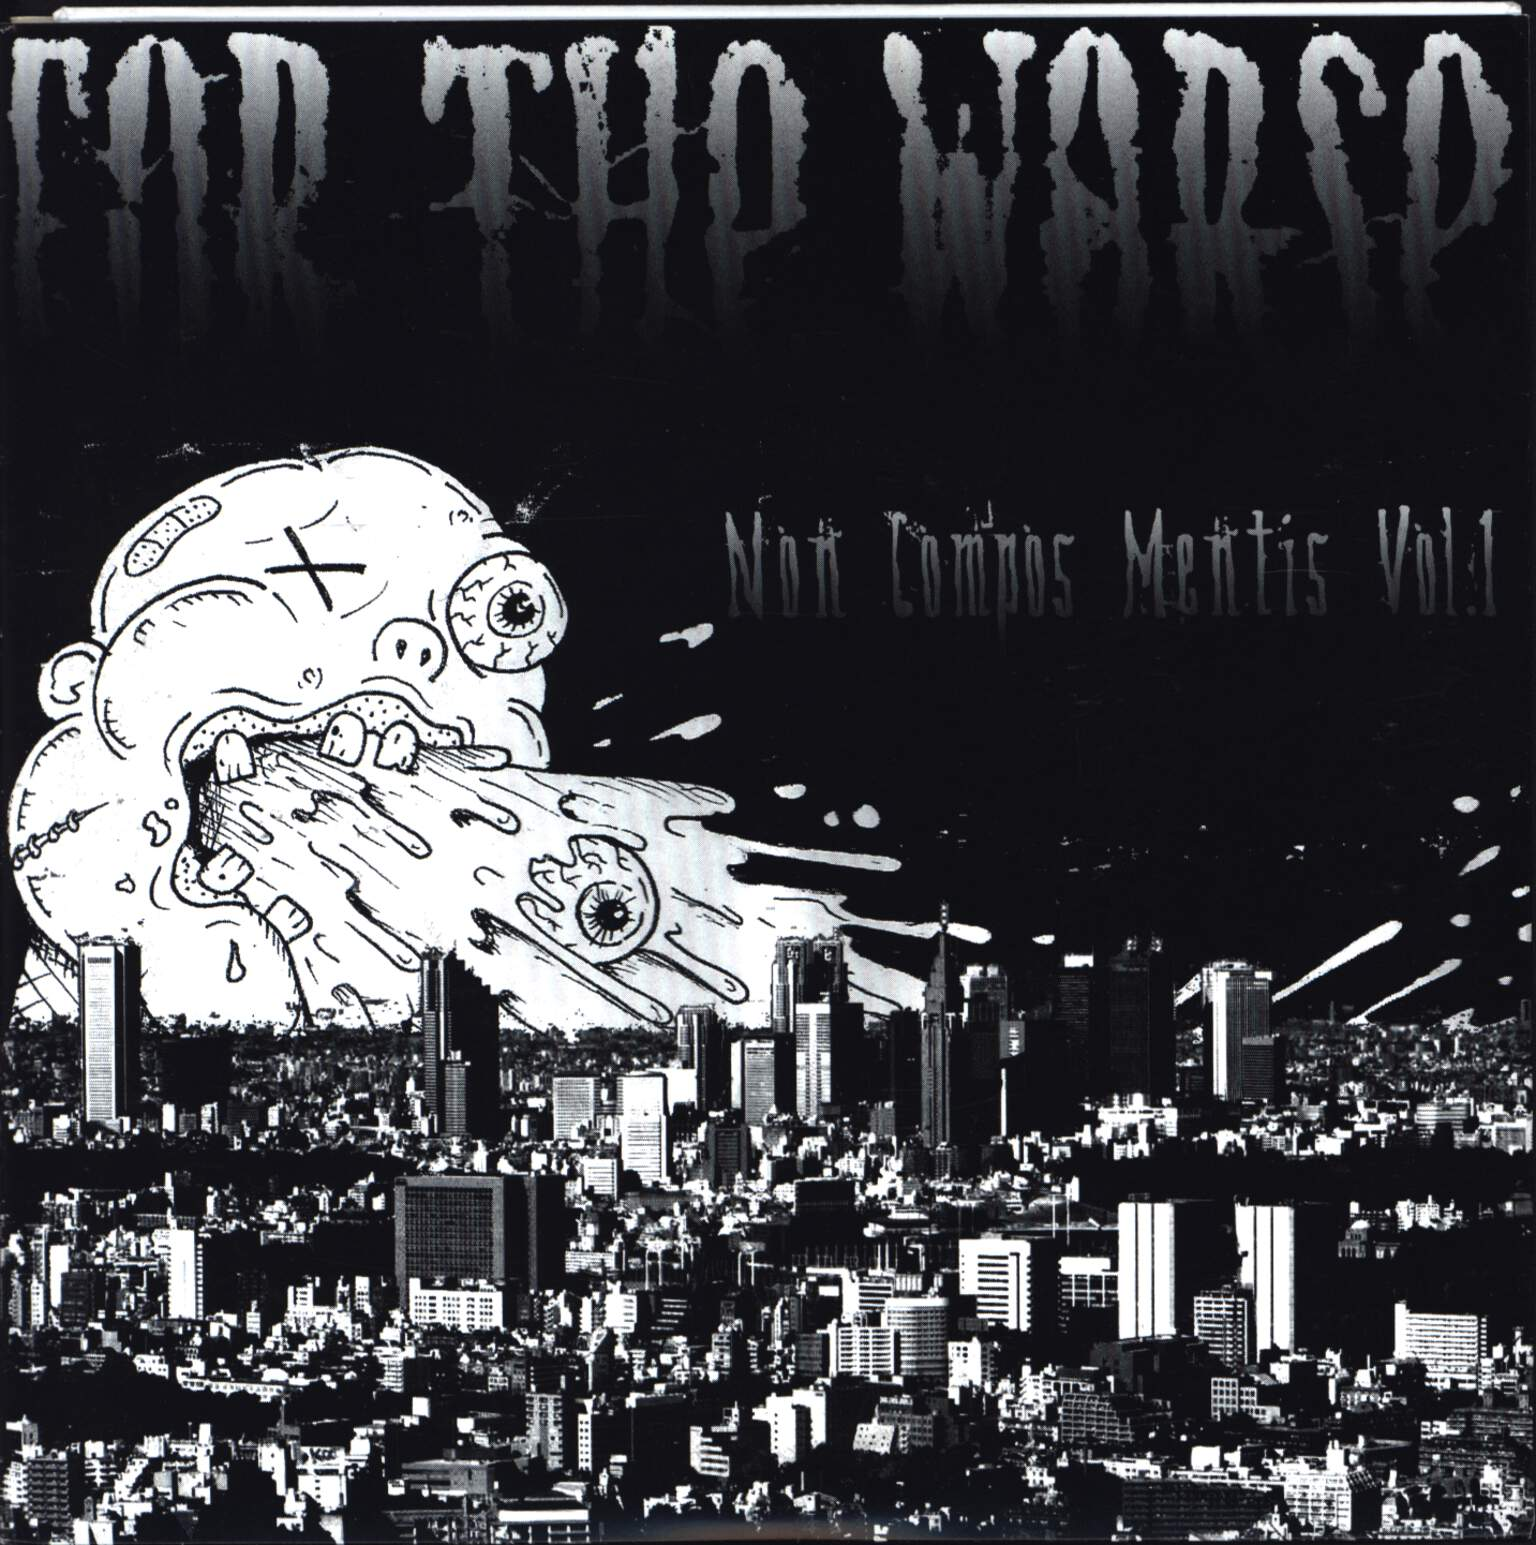 "For The Worse: Non Compos Mentis Vol.1, 7"" Single (Vinyl)"